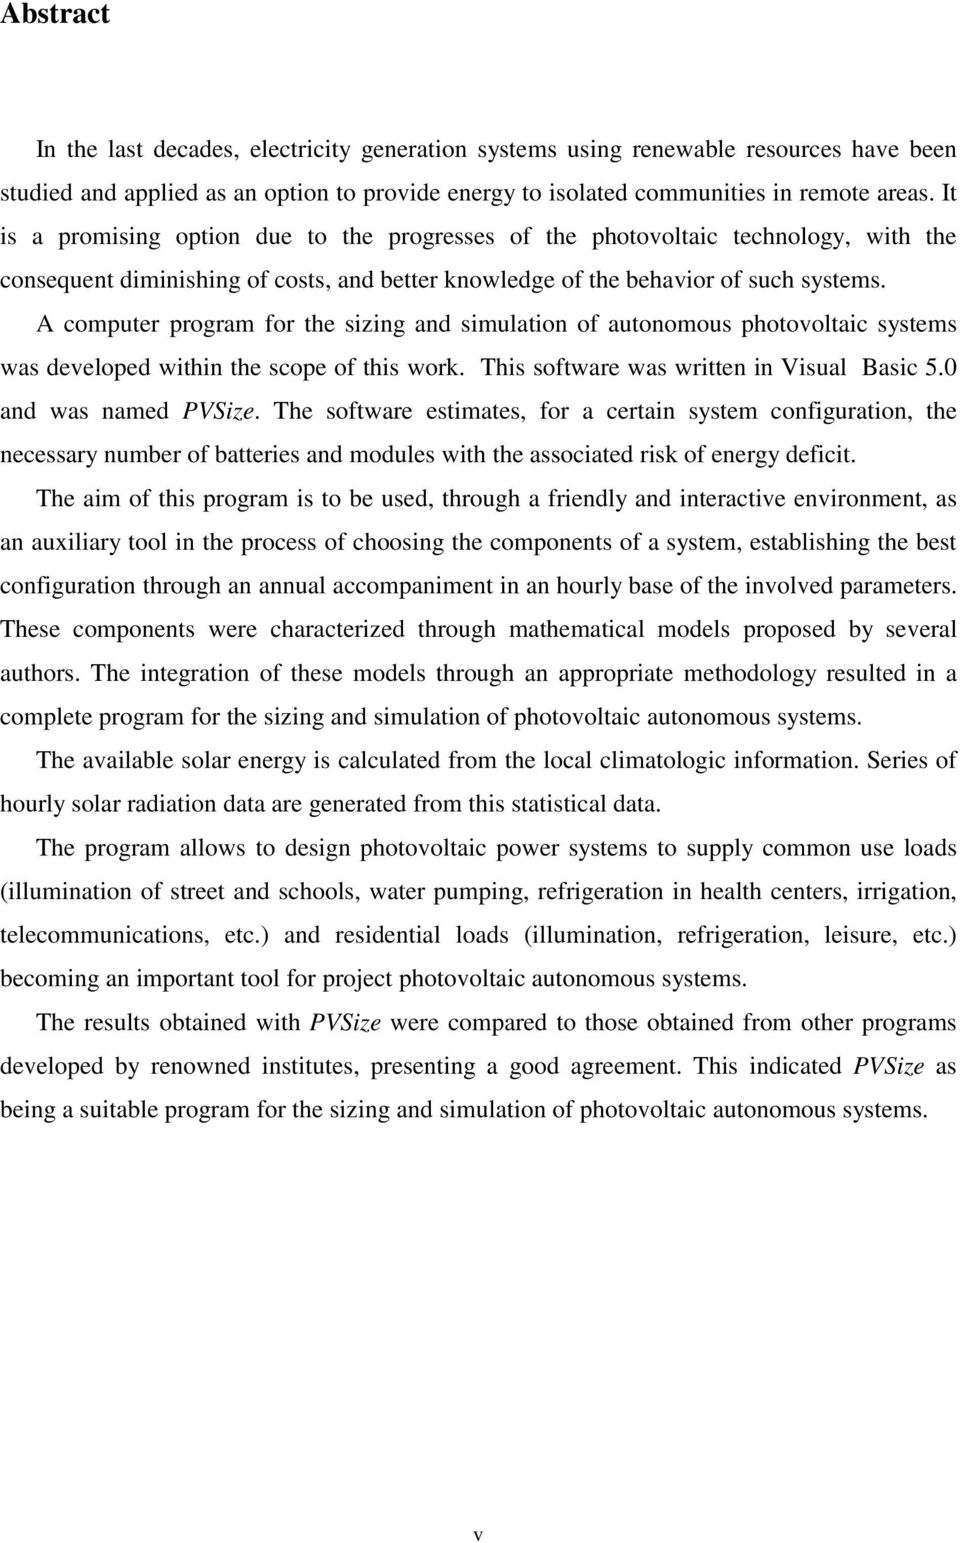 A computer program for the sizing and simulation of autonomous photovoltaic systems was developed within the scope of this work. This software was written in Visual Basic 5.0 and was named PVSize.